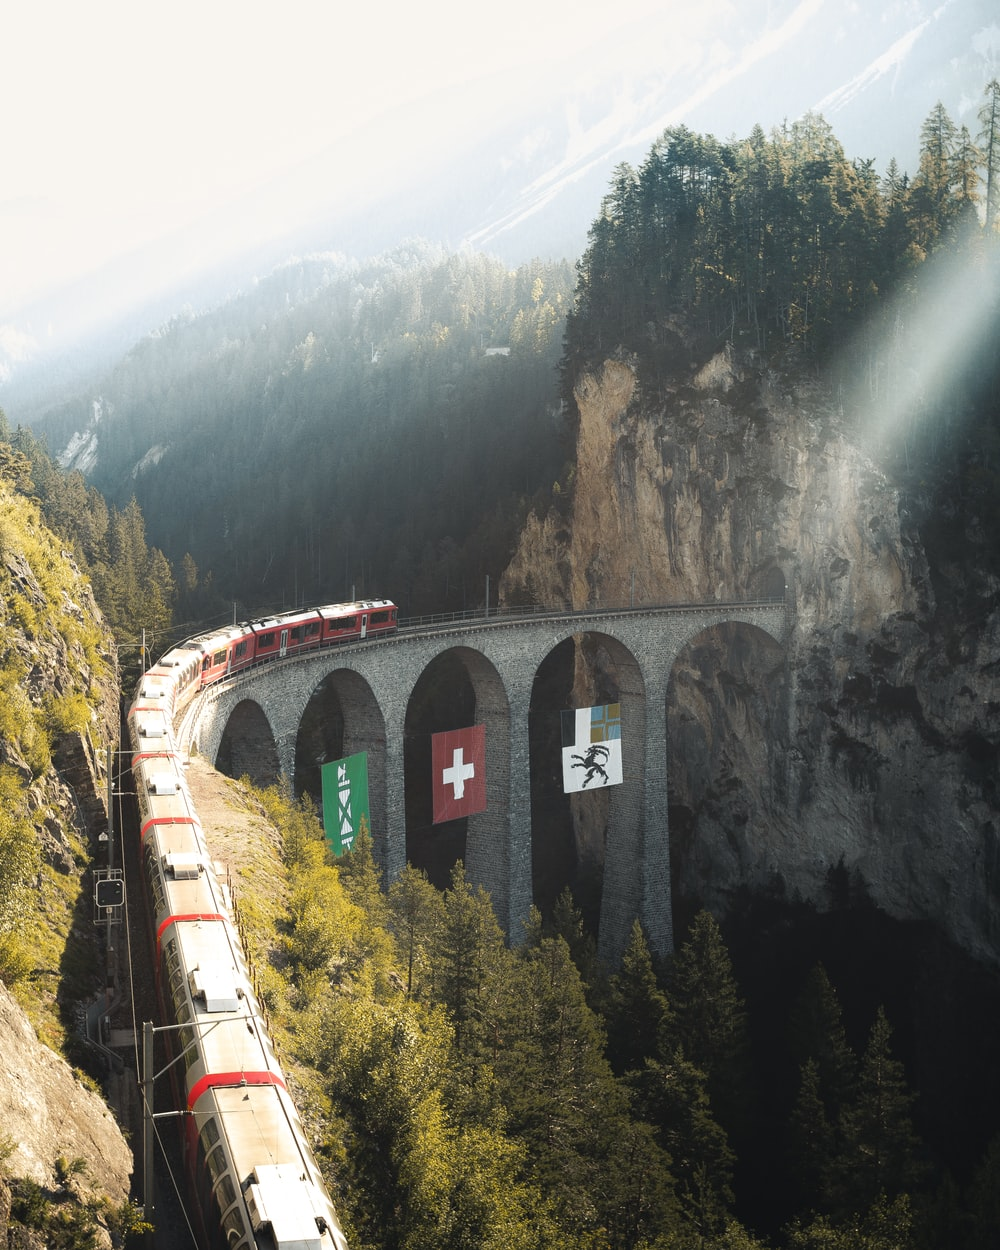 red train on rail near mountain during daytime